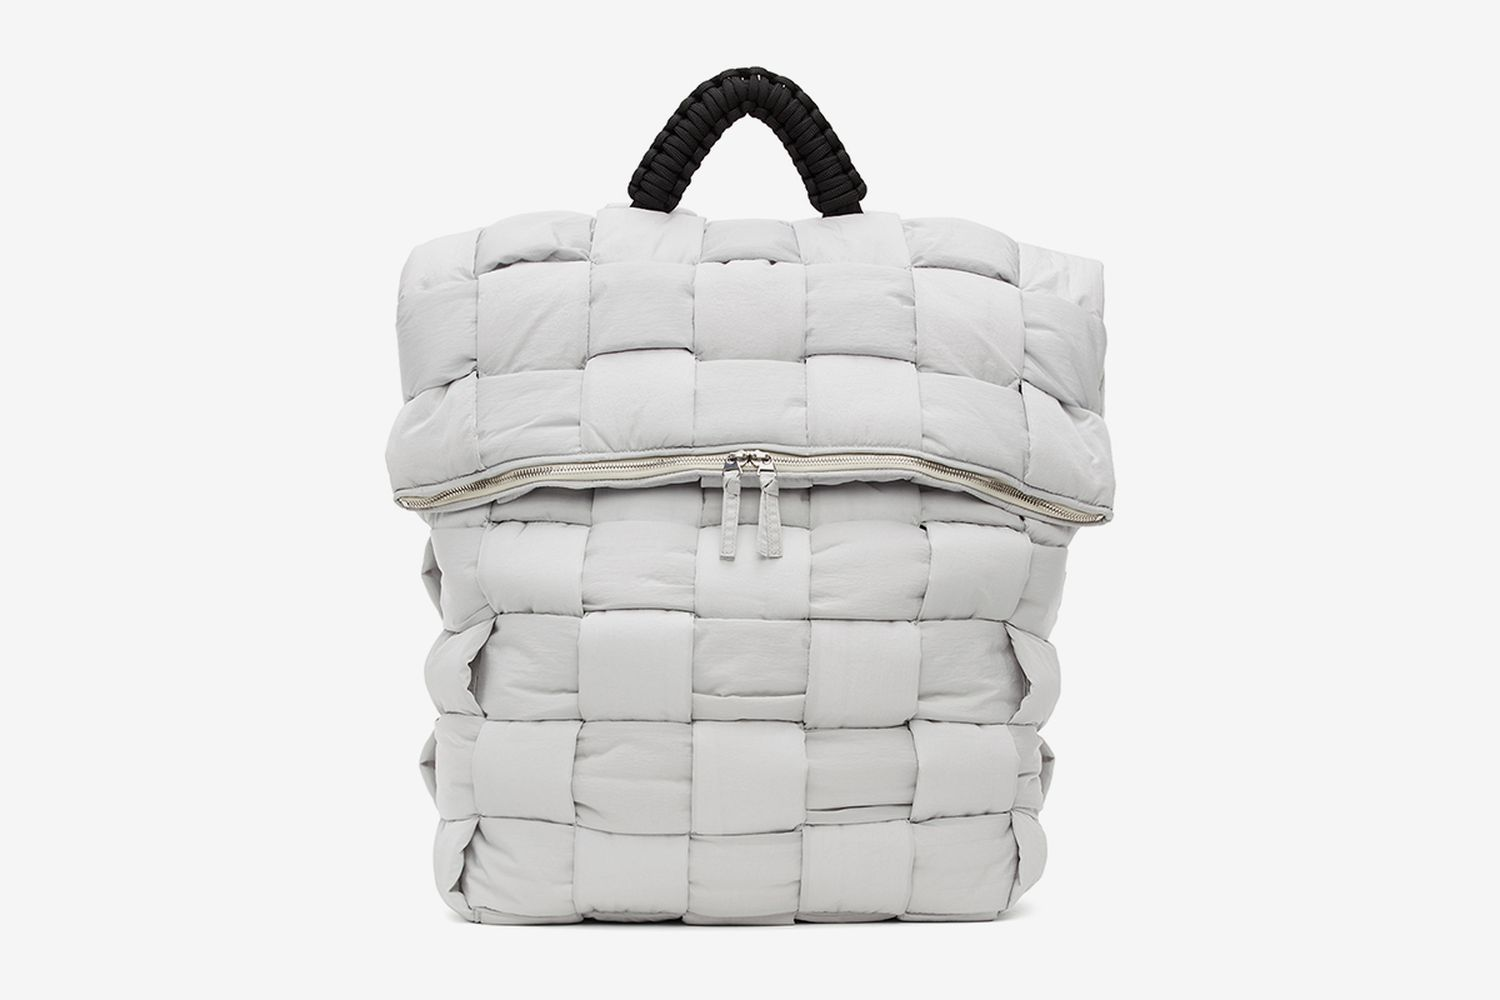 The Padded Backpack